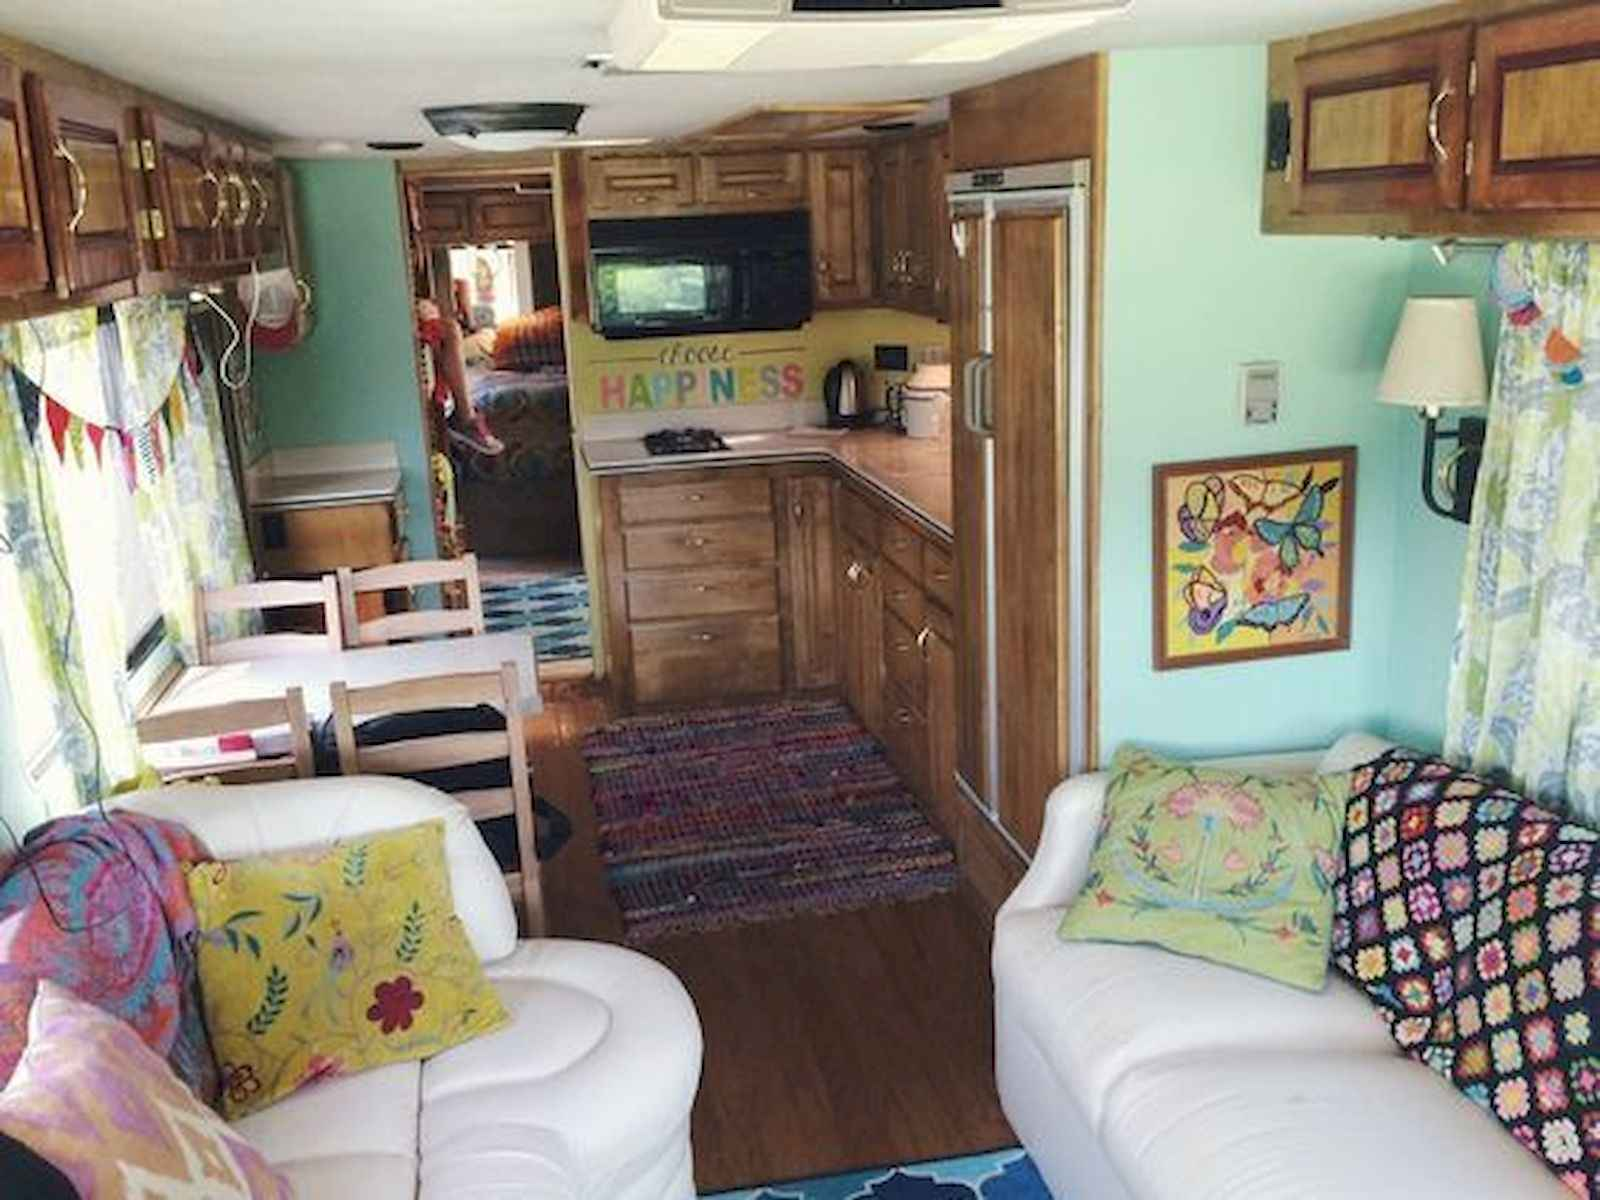 70 Stunning RV Living Camper Room Ideas Decorations Make Your Summer Awesome (37)